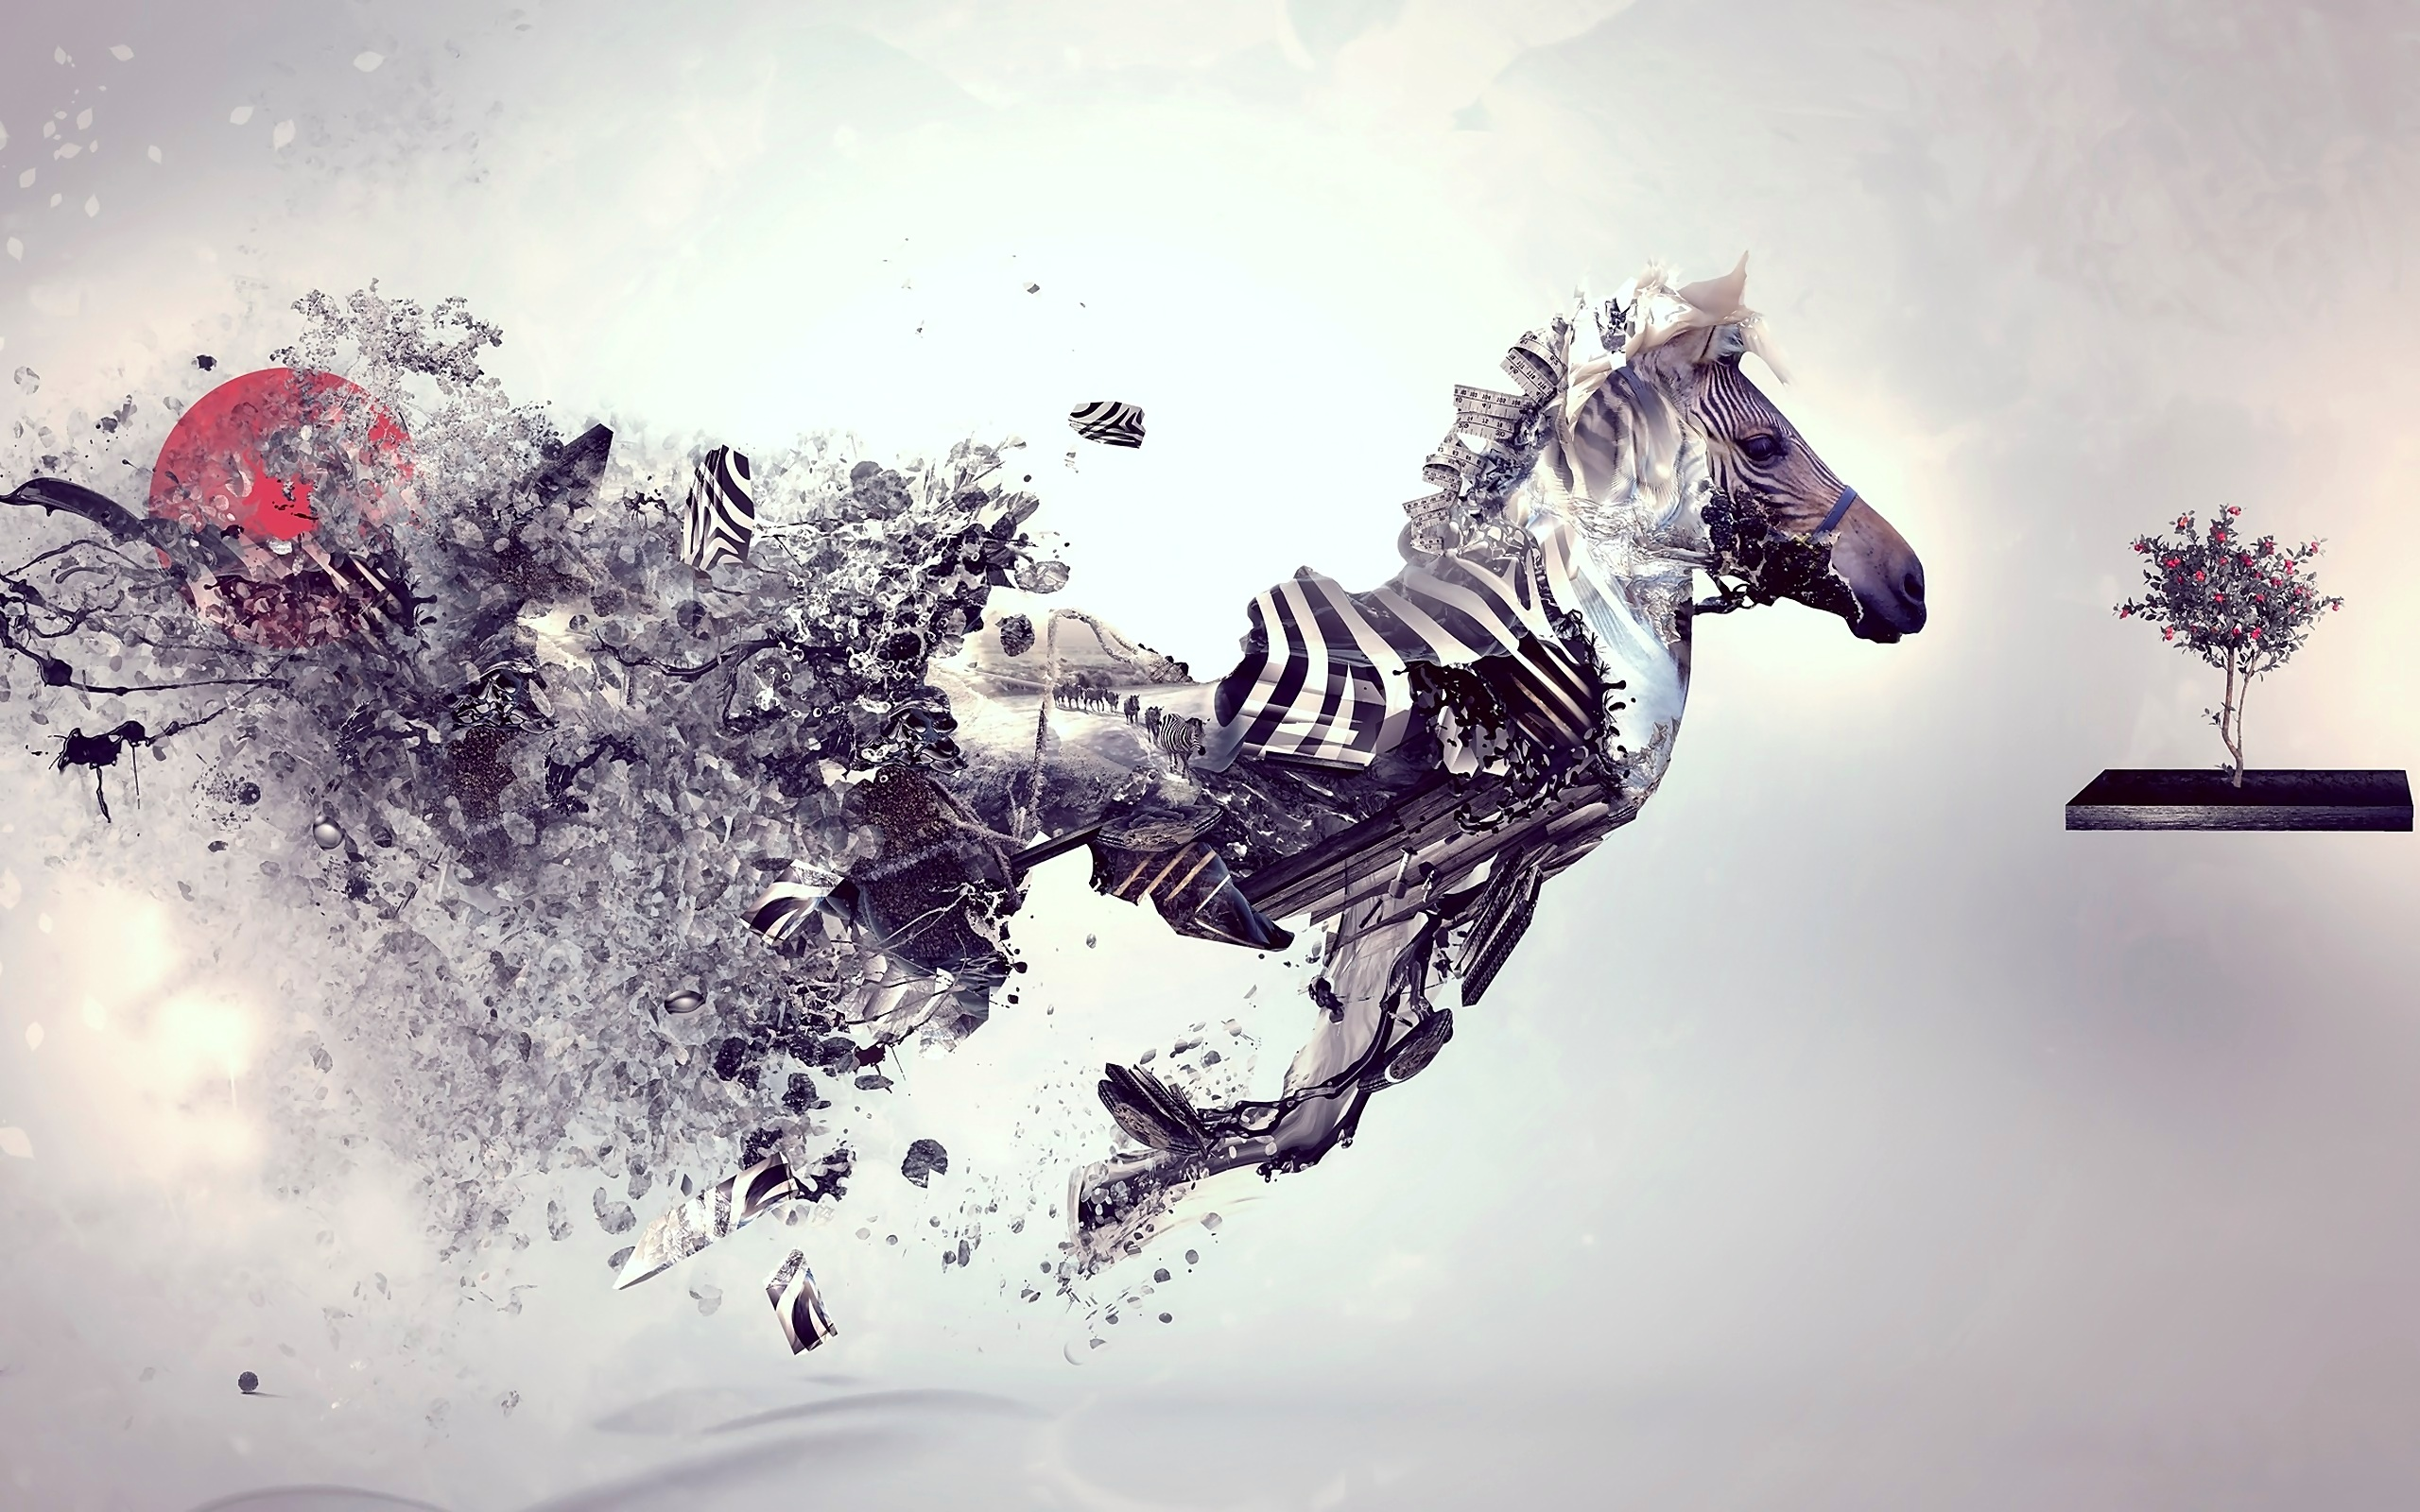 zebra abstract art hd abstract 4k wallpapers images backgrounds